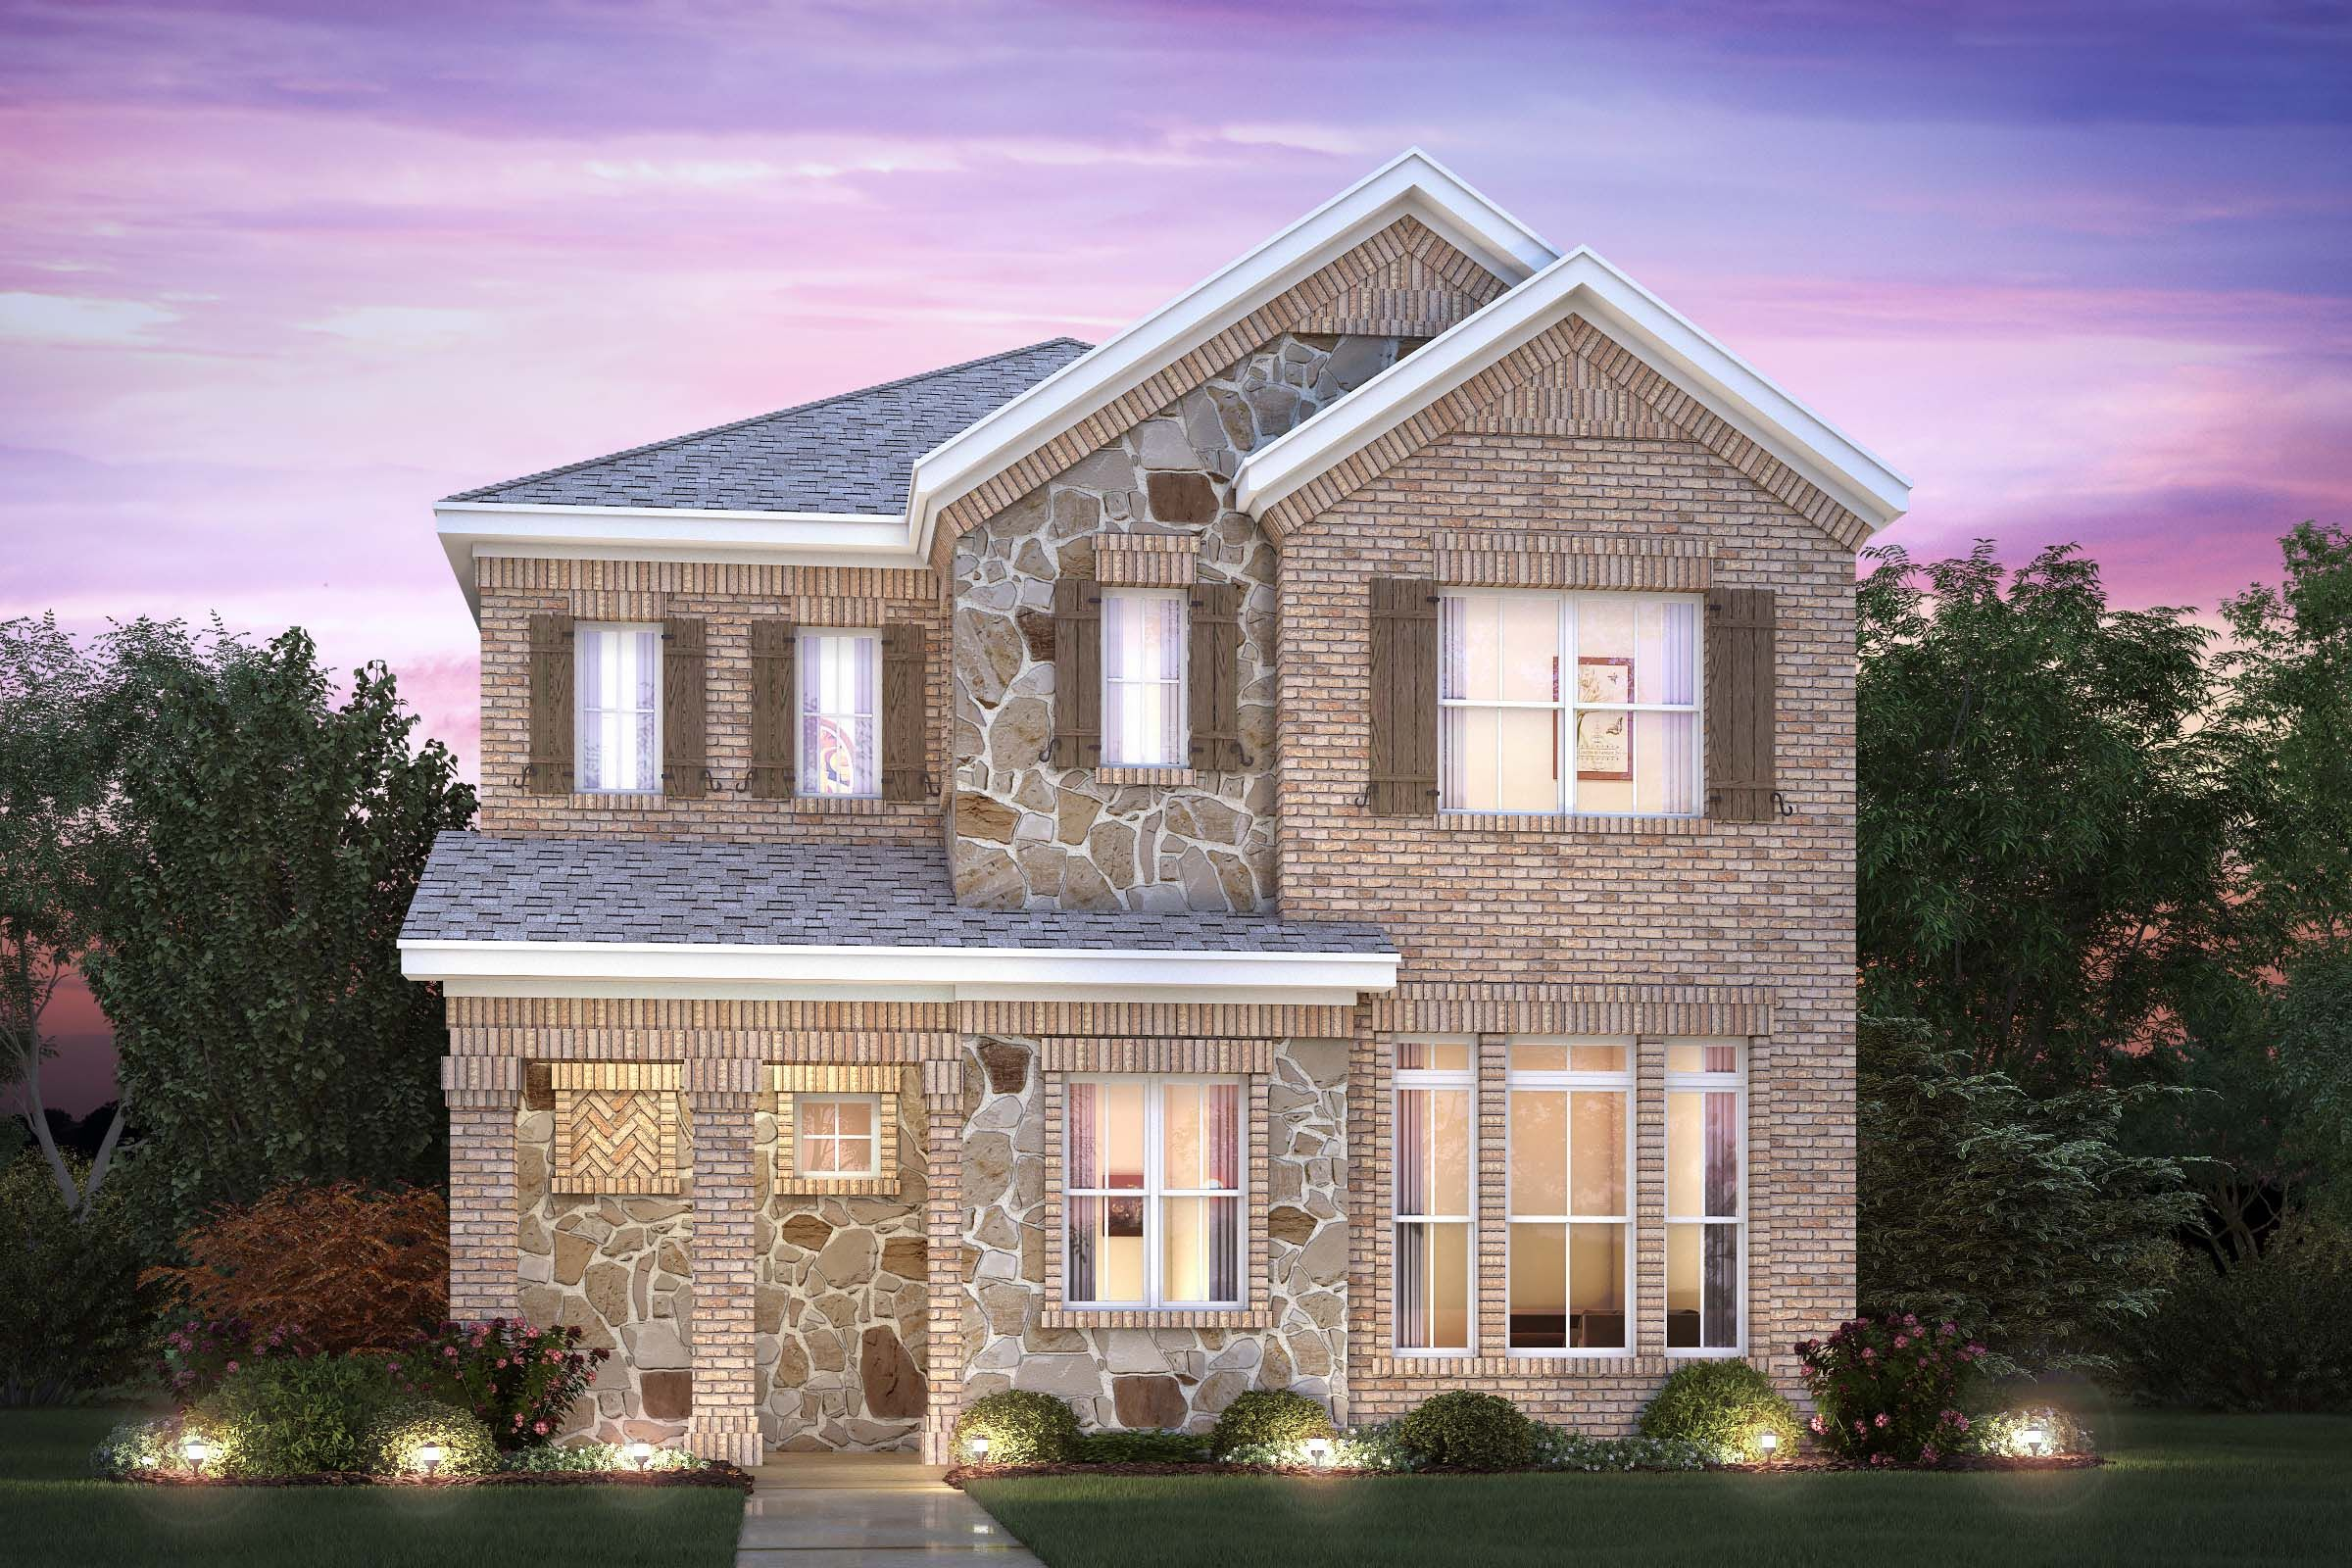 New Home Construction Plans In Dallas Tx View 10 757